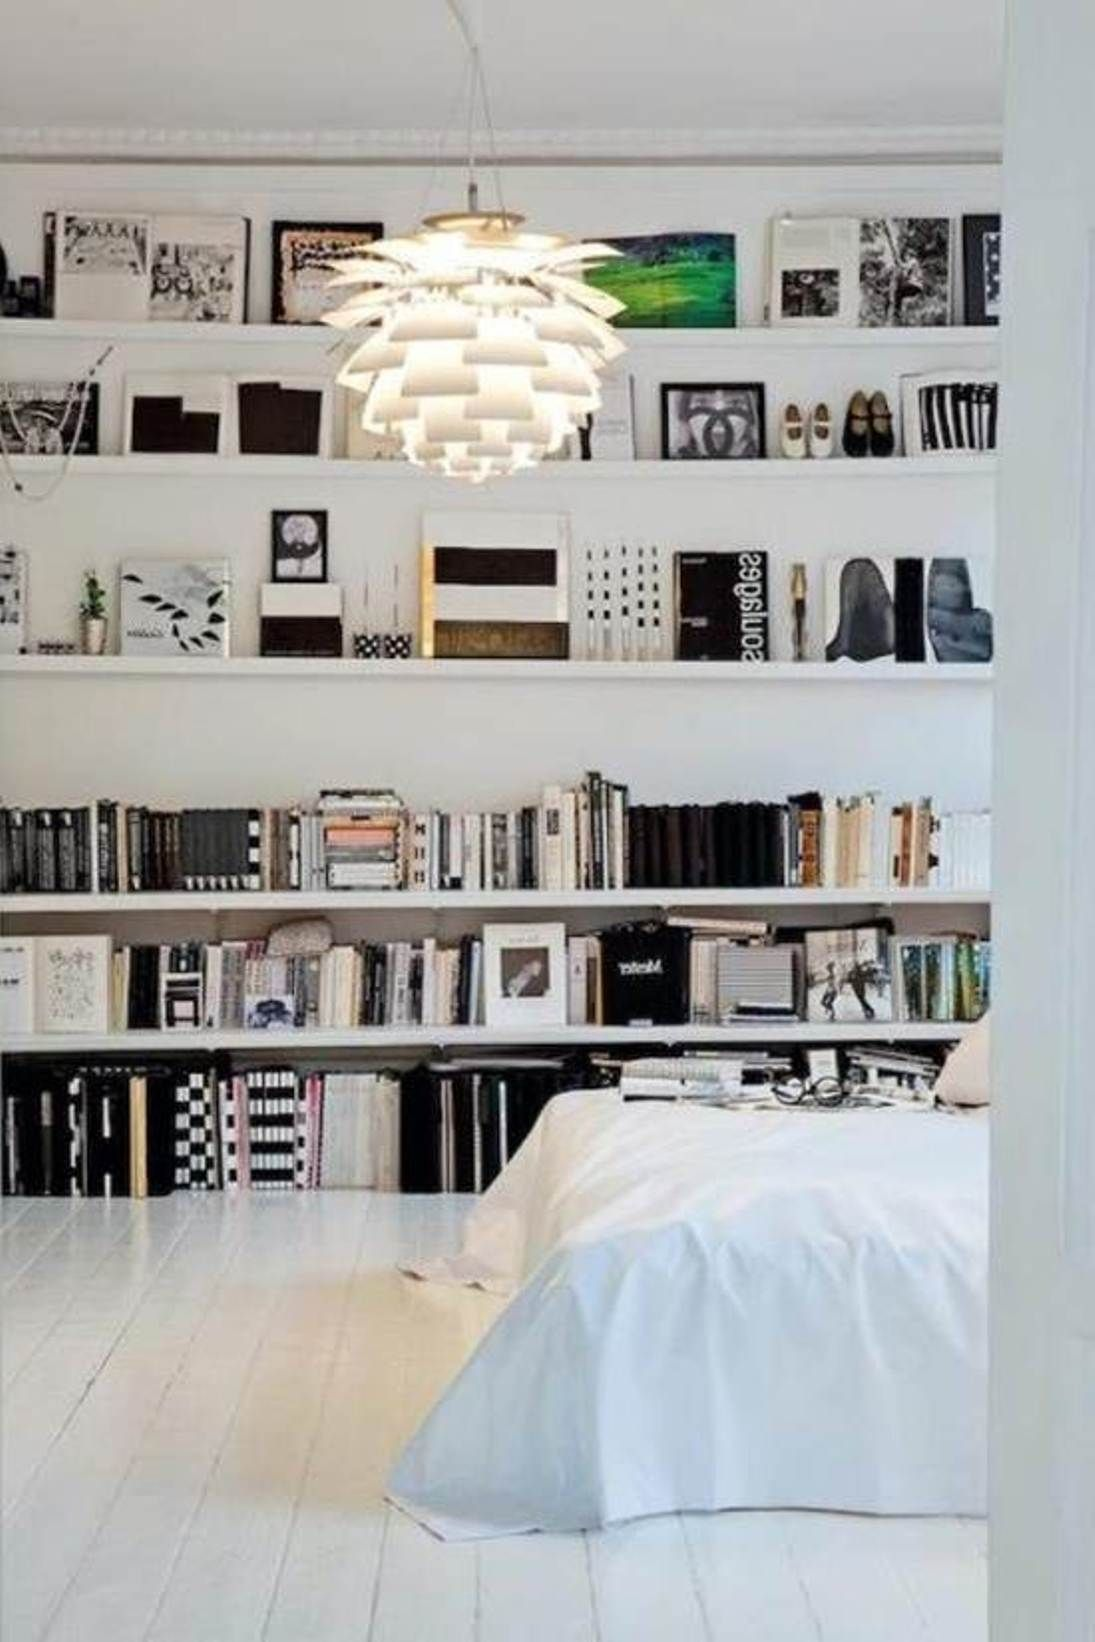 30 clever space-saving design ideas for small homes | space saving